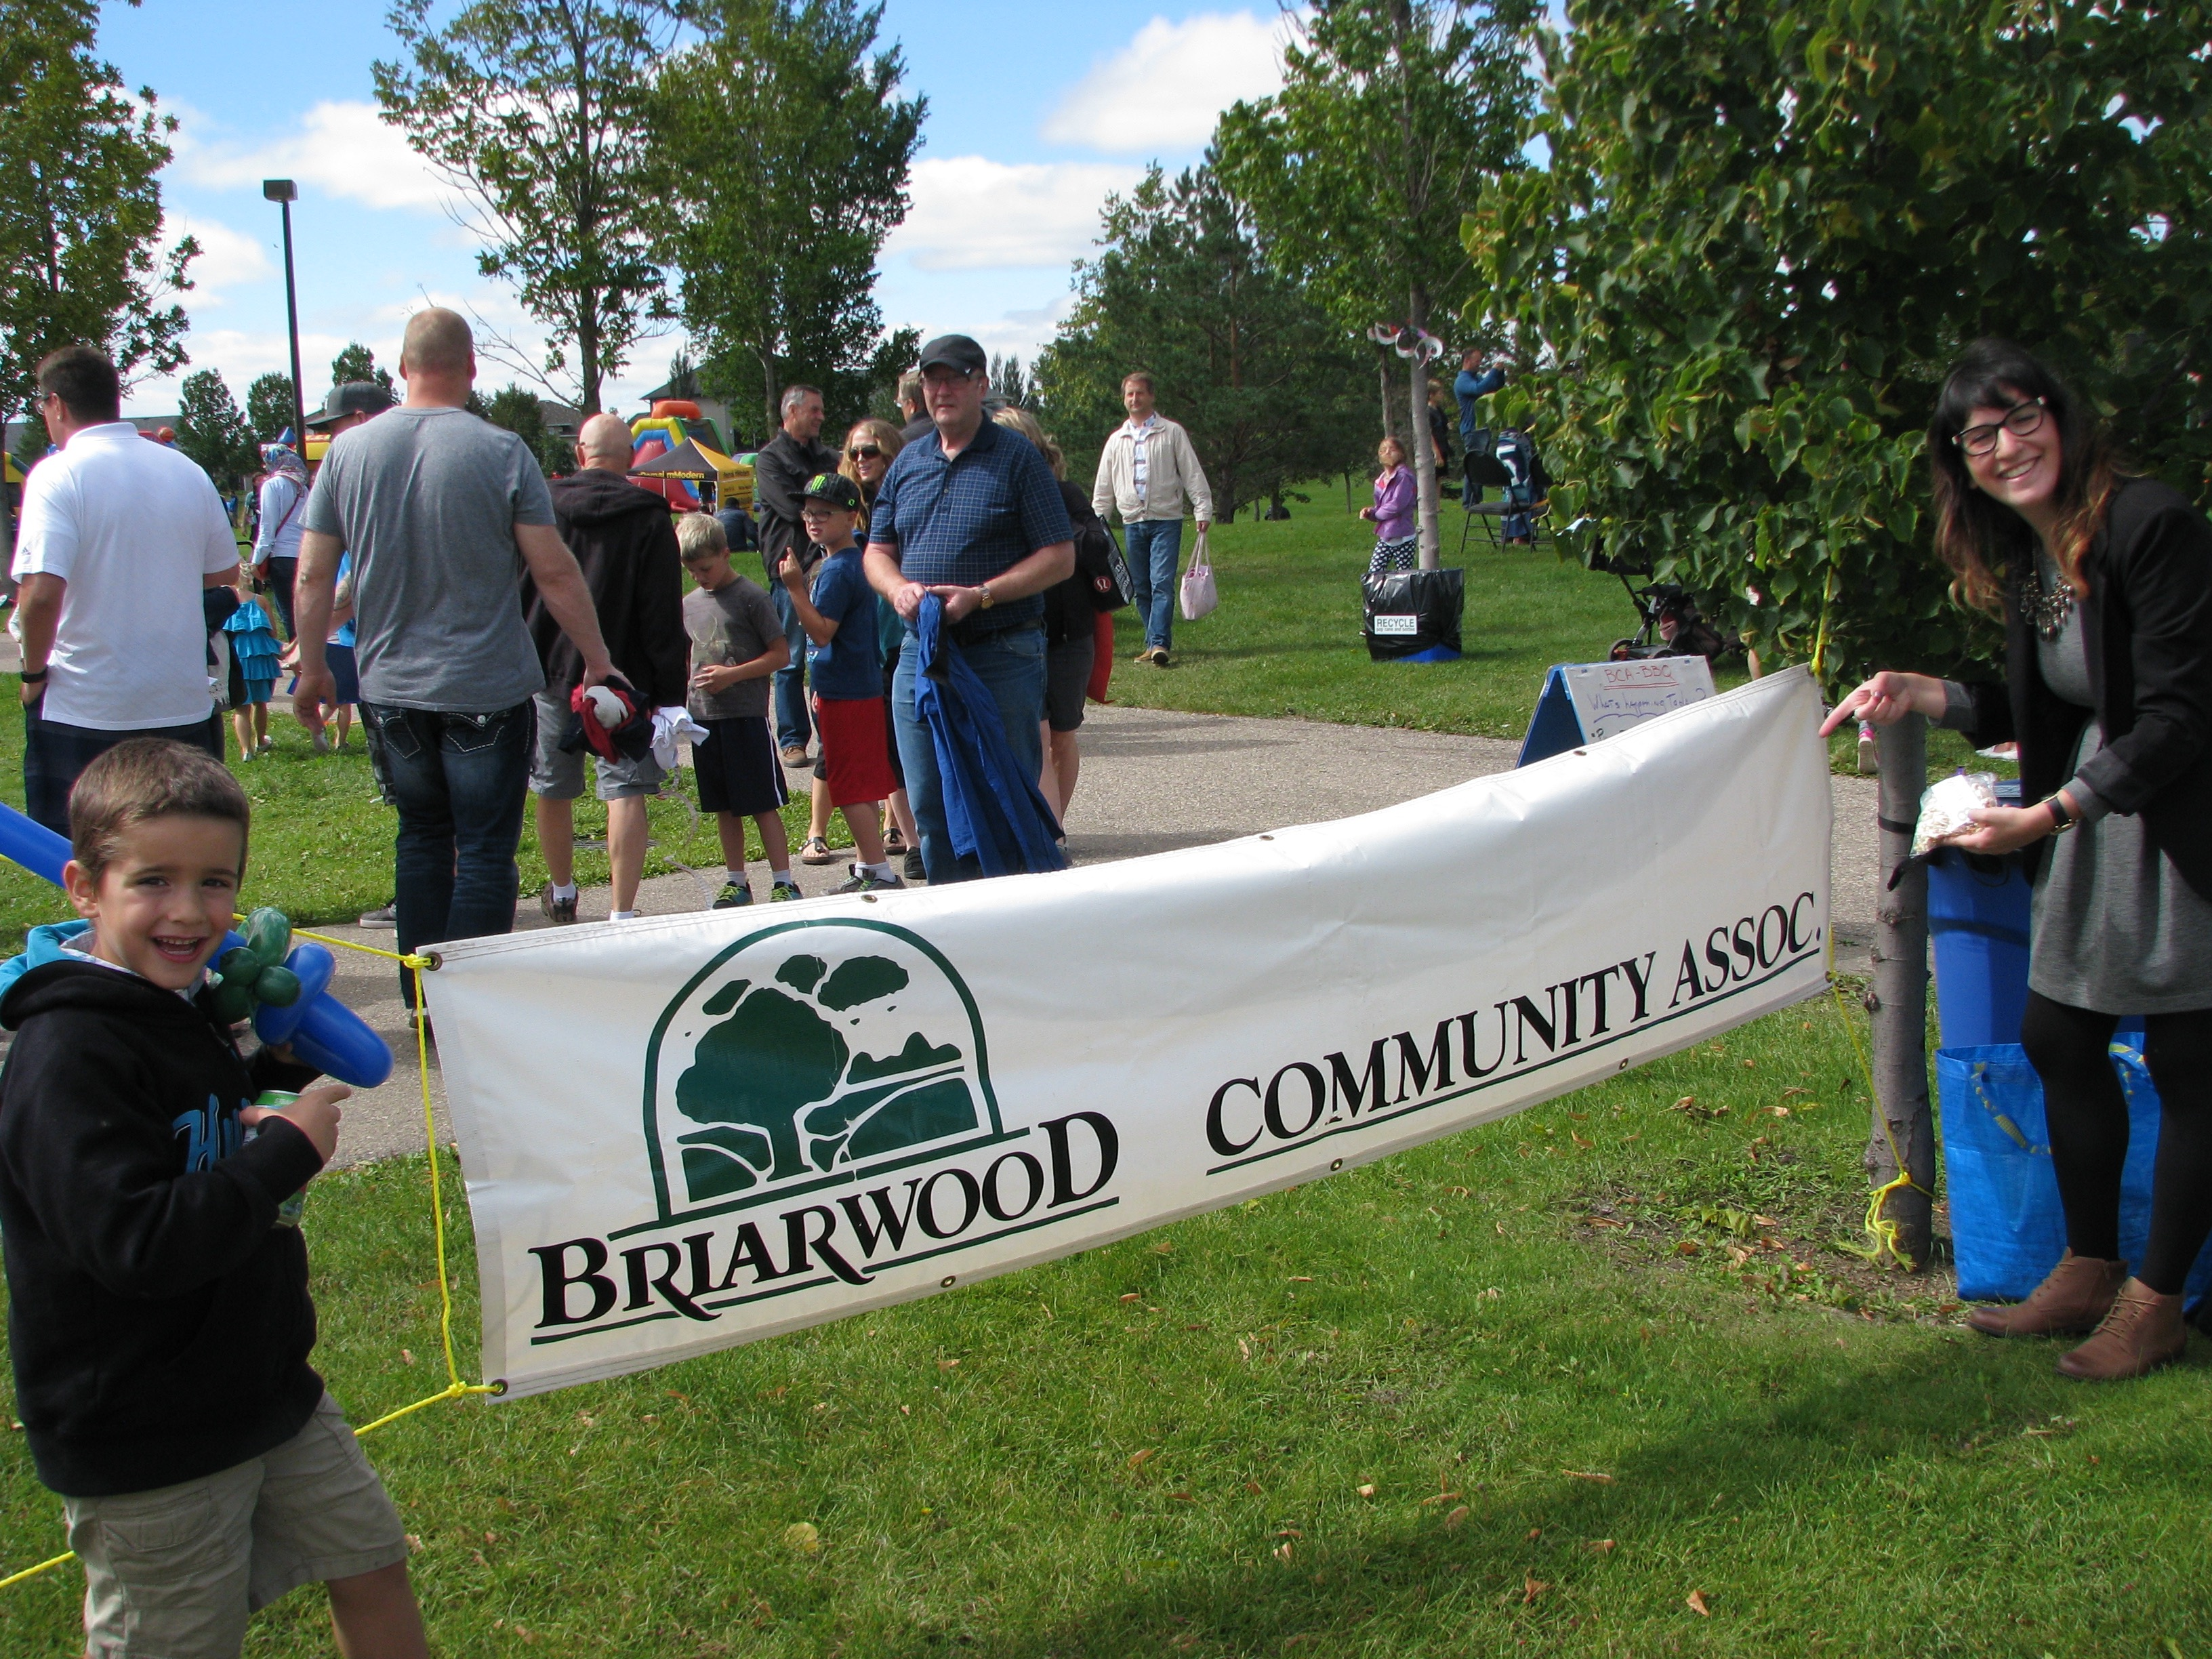 Briarwood_Annual_BBQ_-_Photo_2.jpg